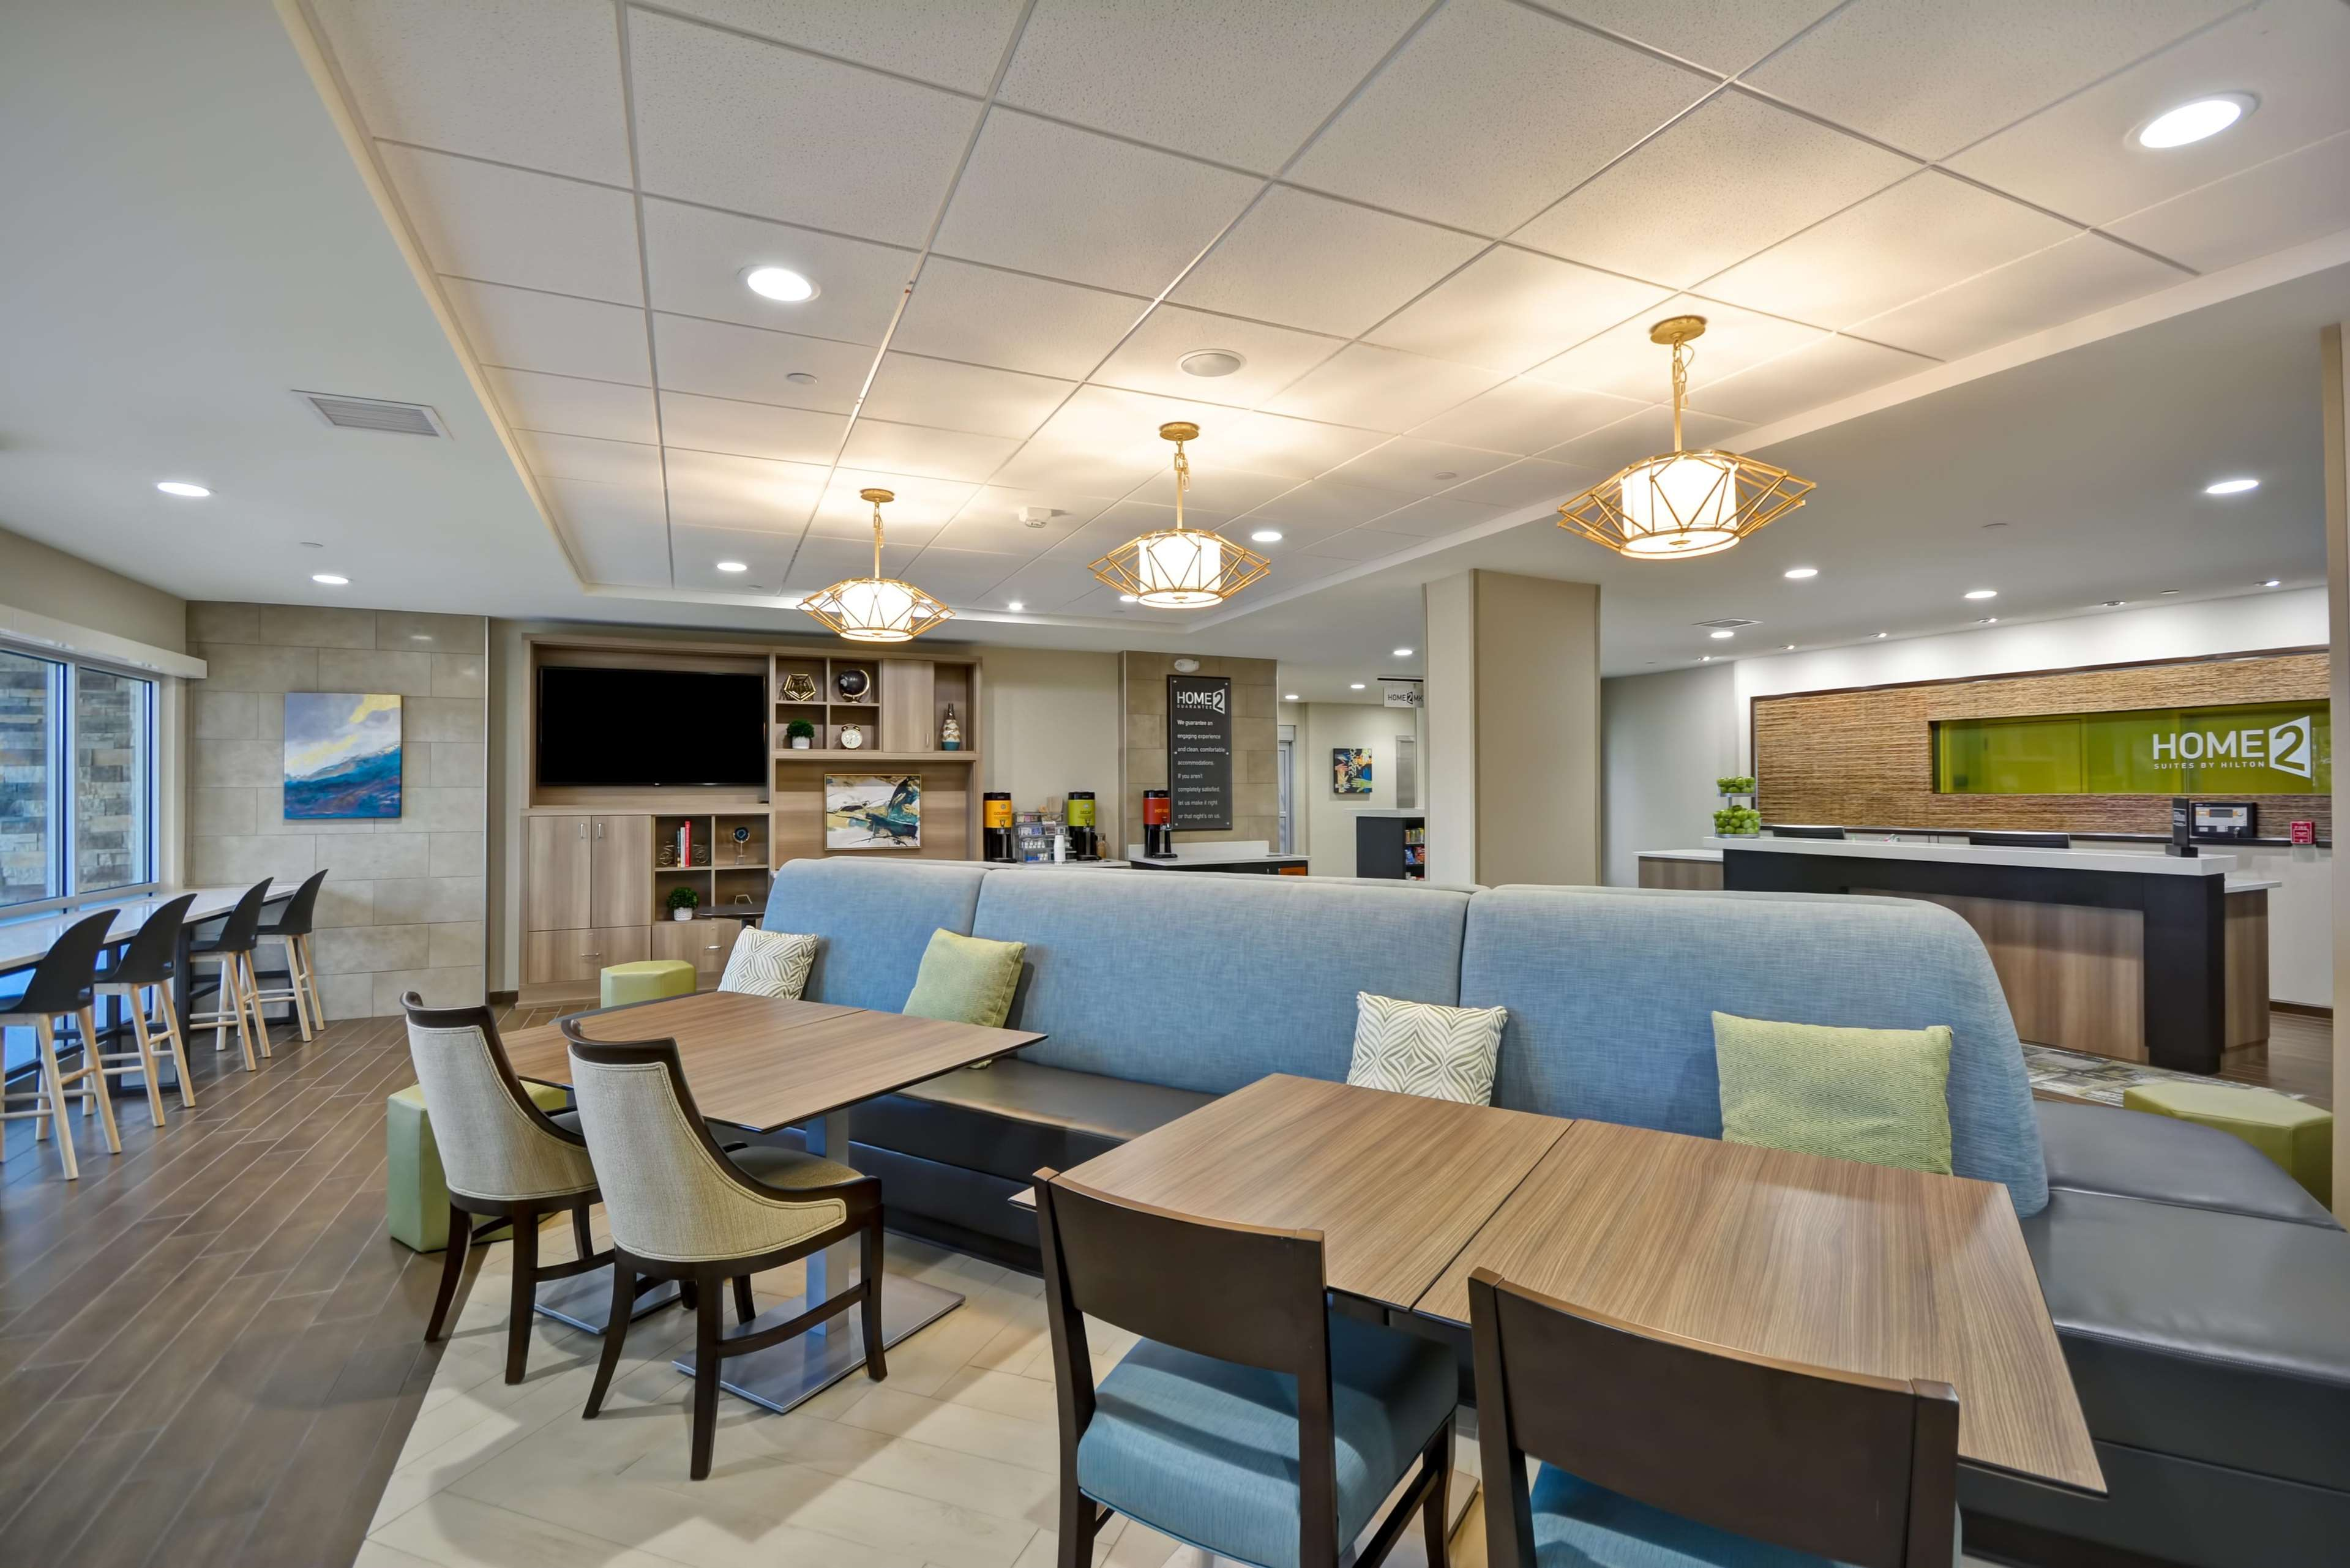 Home2 Suites By Hilton Maumee Toledo image 7